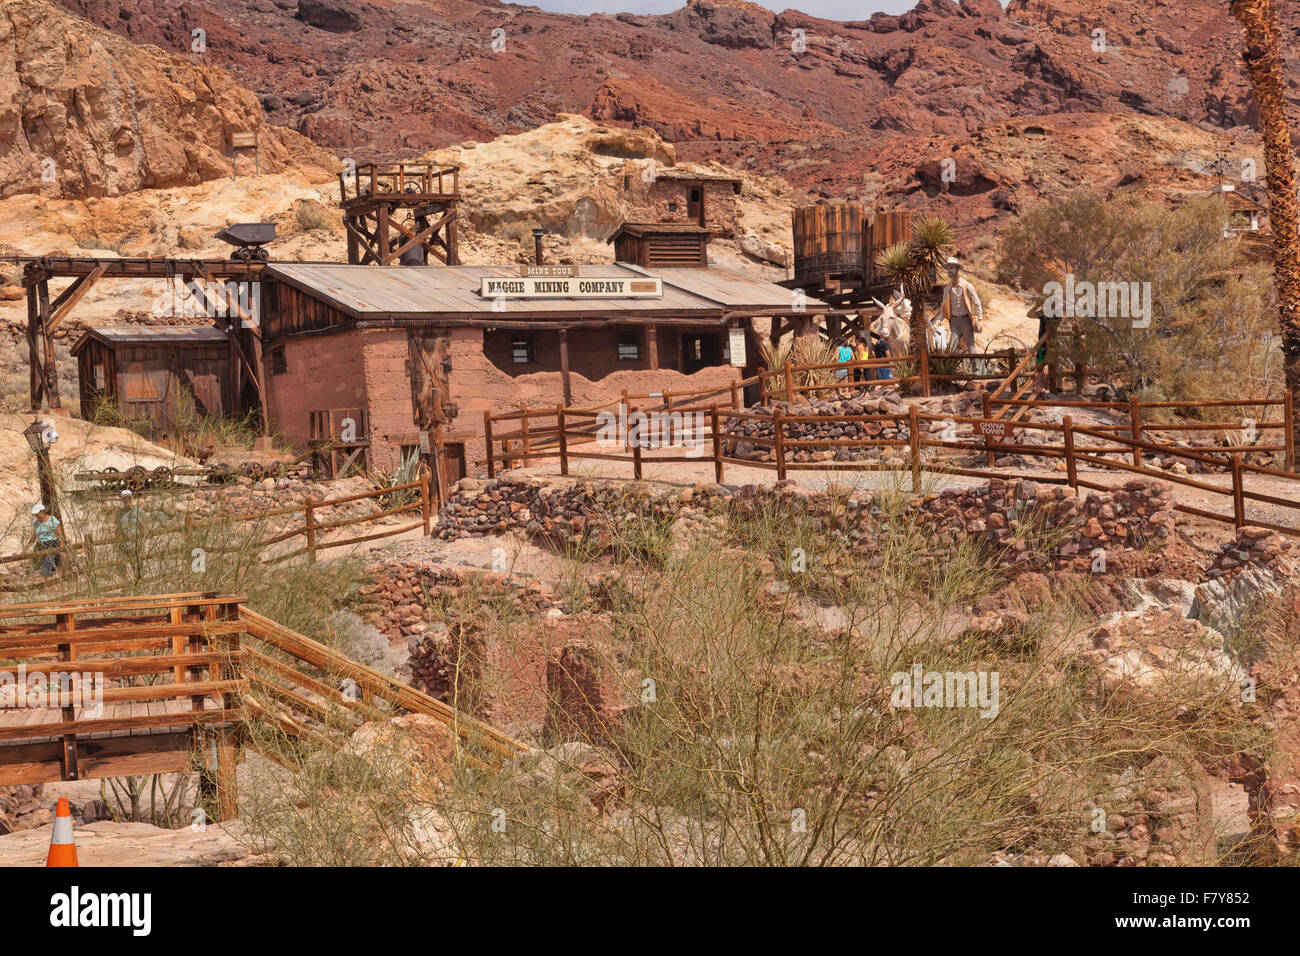 Ghost Town In The Nevada Desert Historical Abandoned Mining Town – Tourist Attractions Near Las Vegas